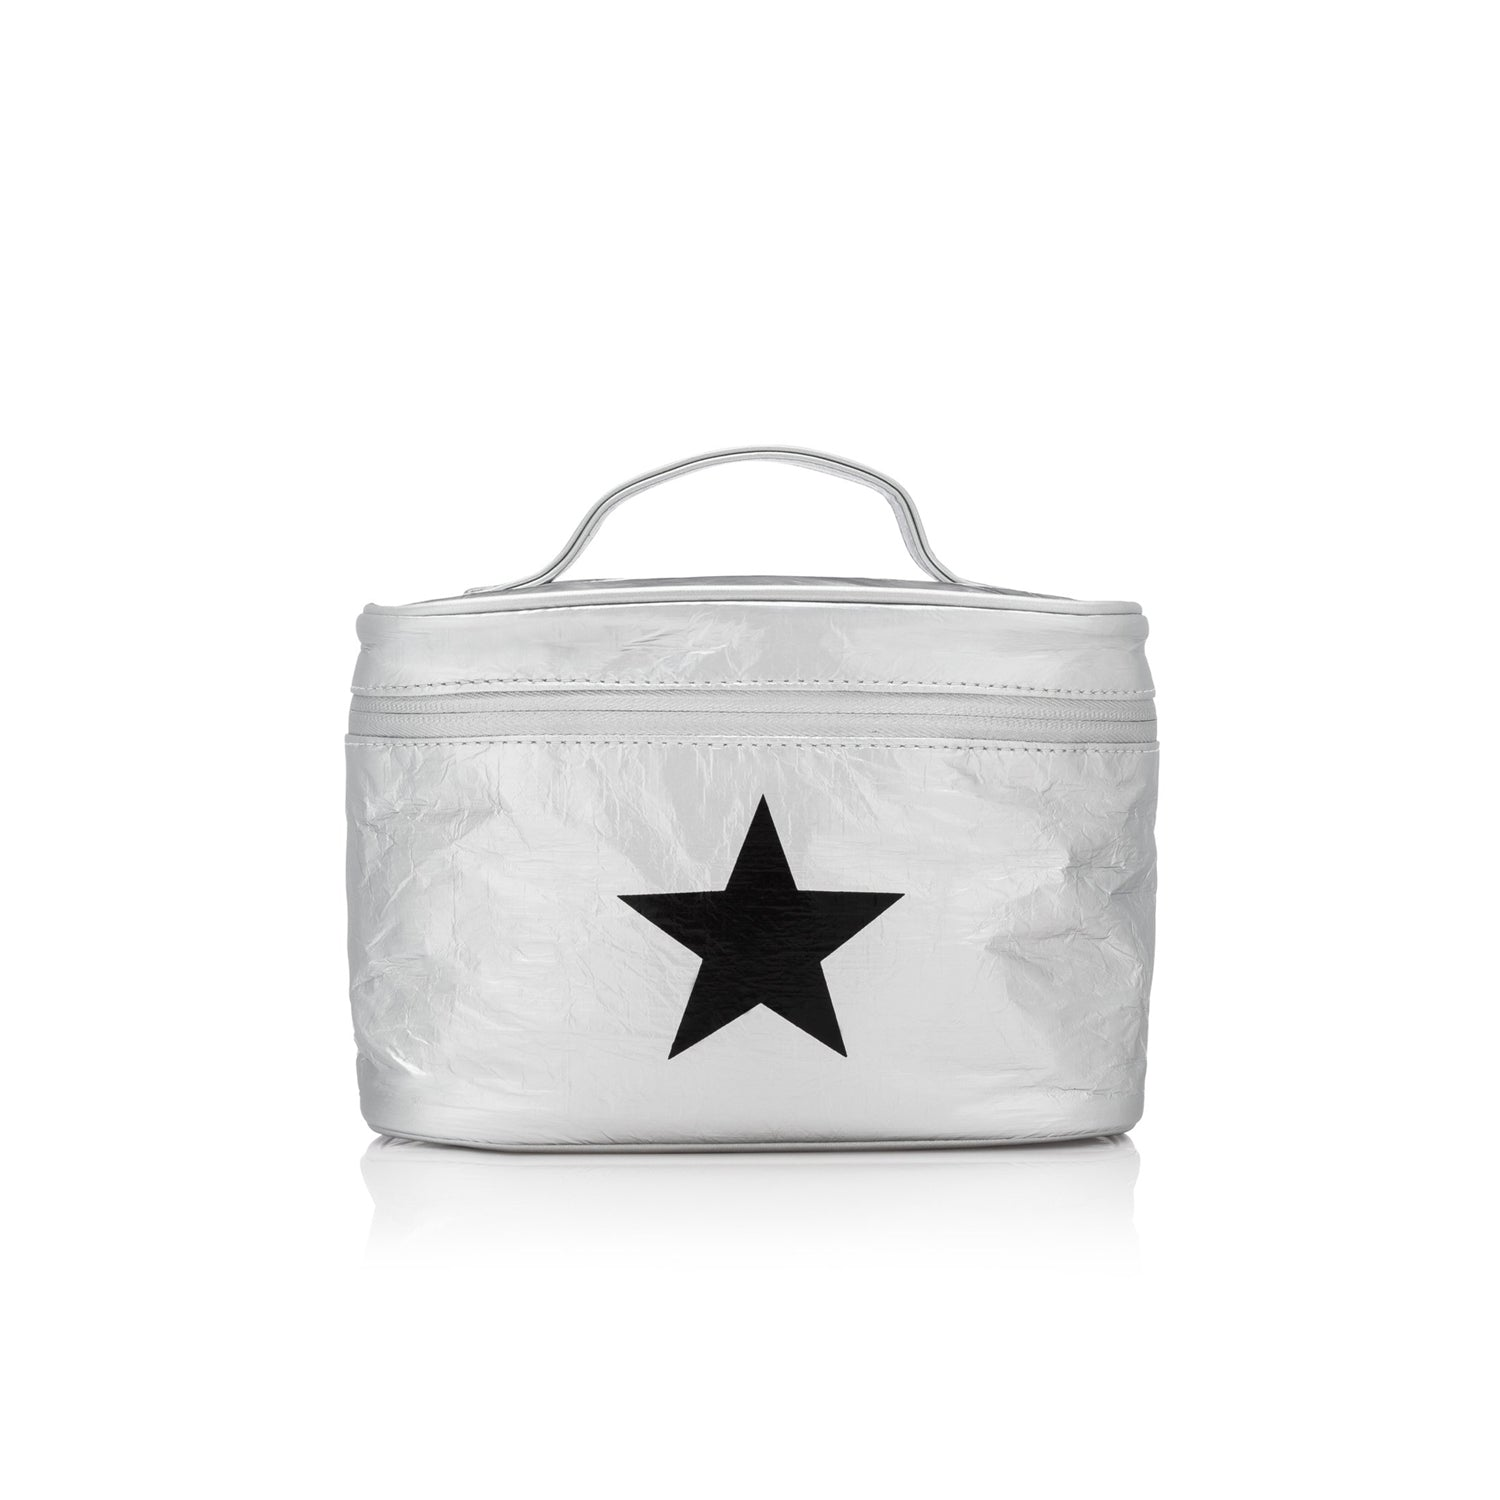 Cosmetic Case - Lunch Box - Silver with Black Star